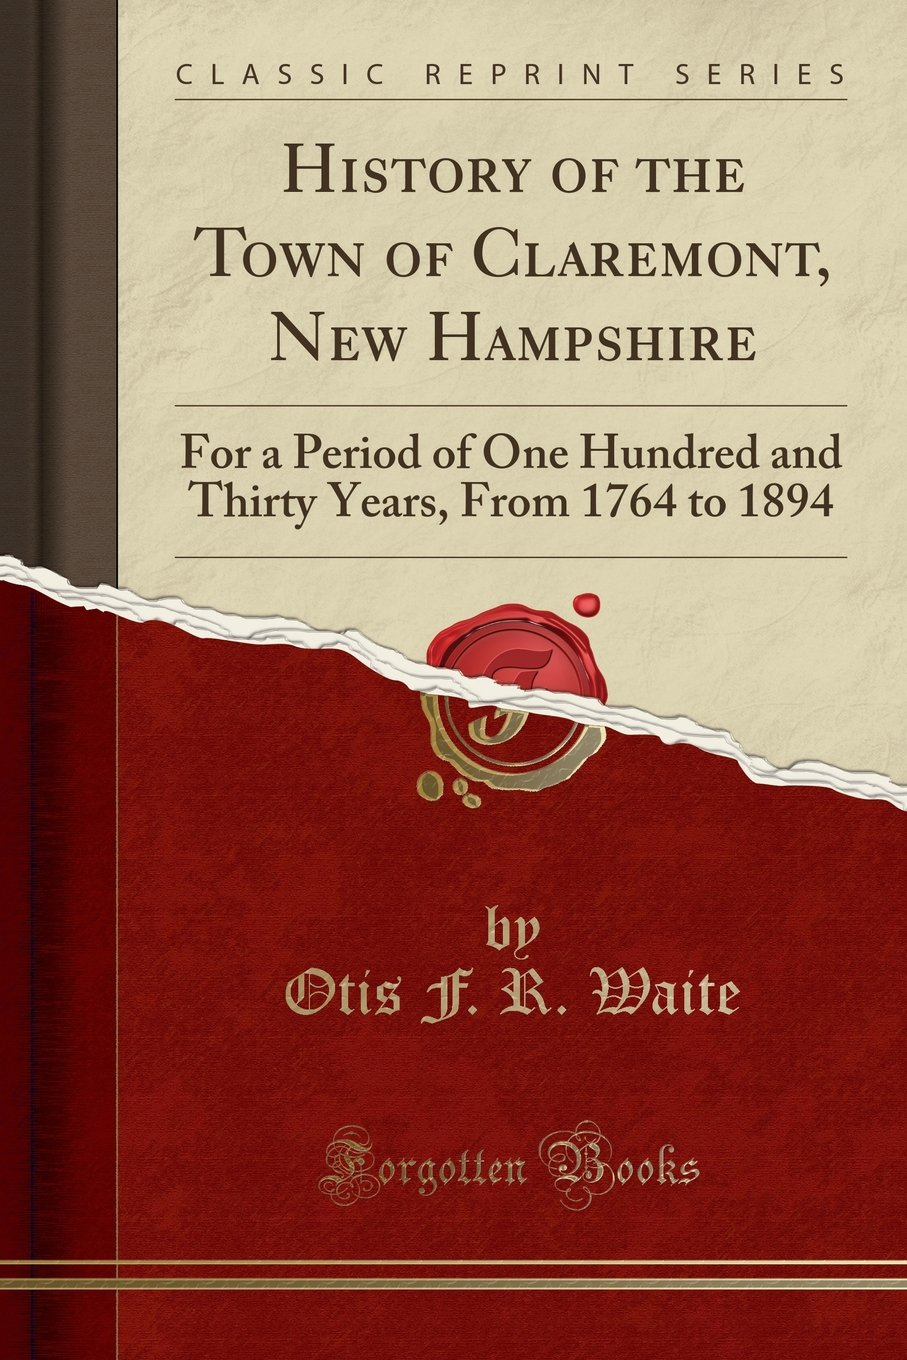 History of the Town of Claremont, New Hampshire: For a Period of One Hundred and Thirty Years, From 1764 to 1894 (Classic Reprint) pdf